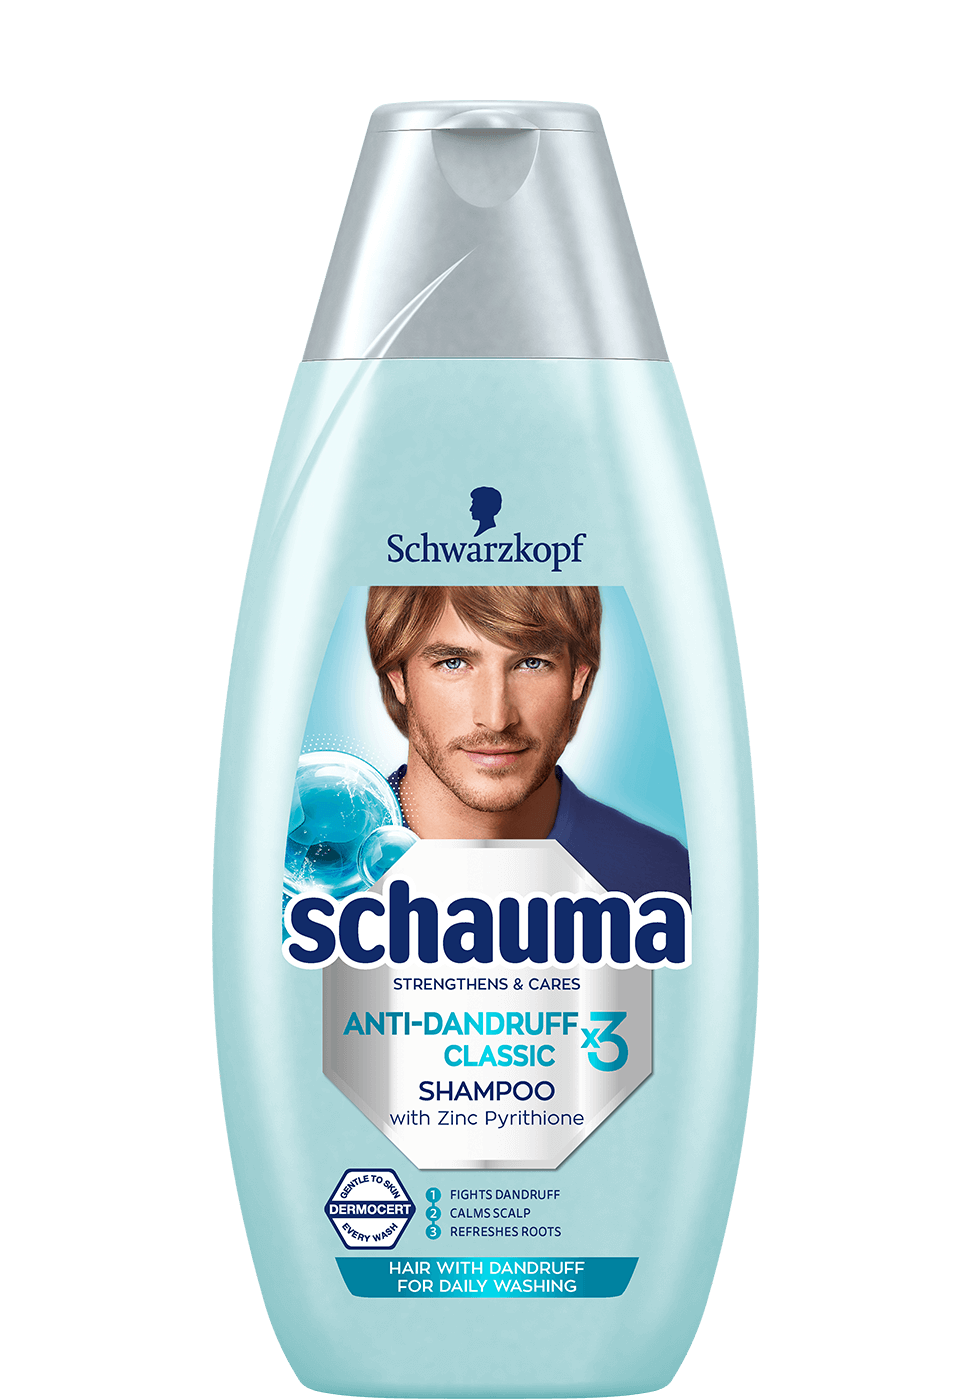 schauma_com_for_men_anti_dandruff_classic_shampoo_970x1400